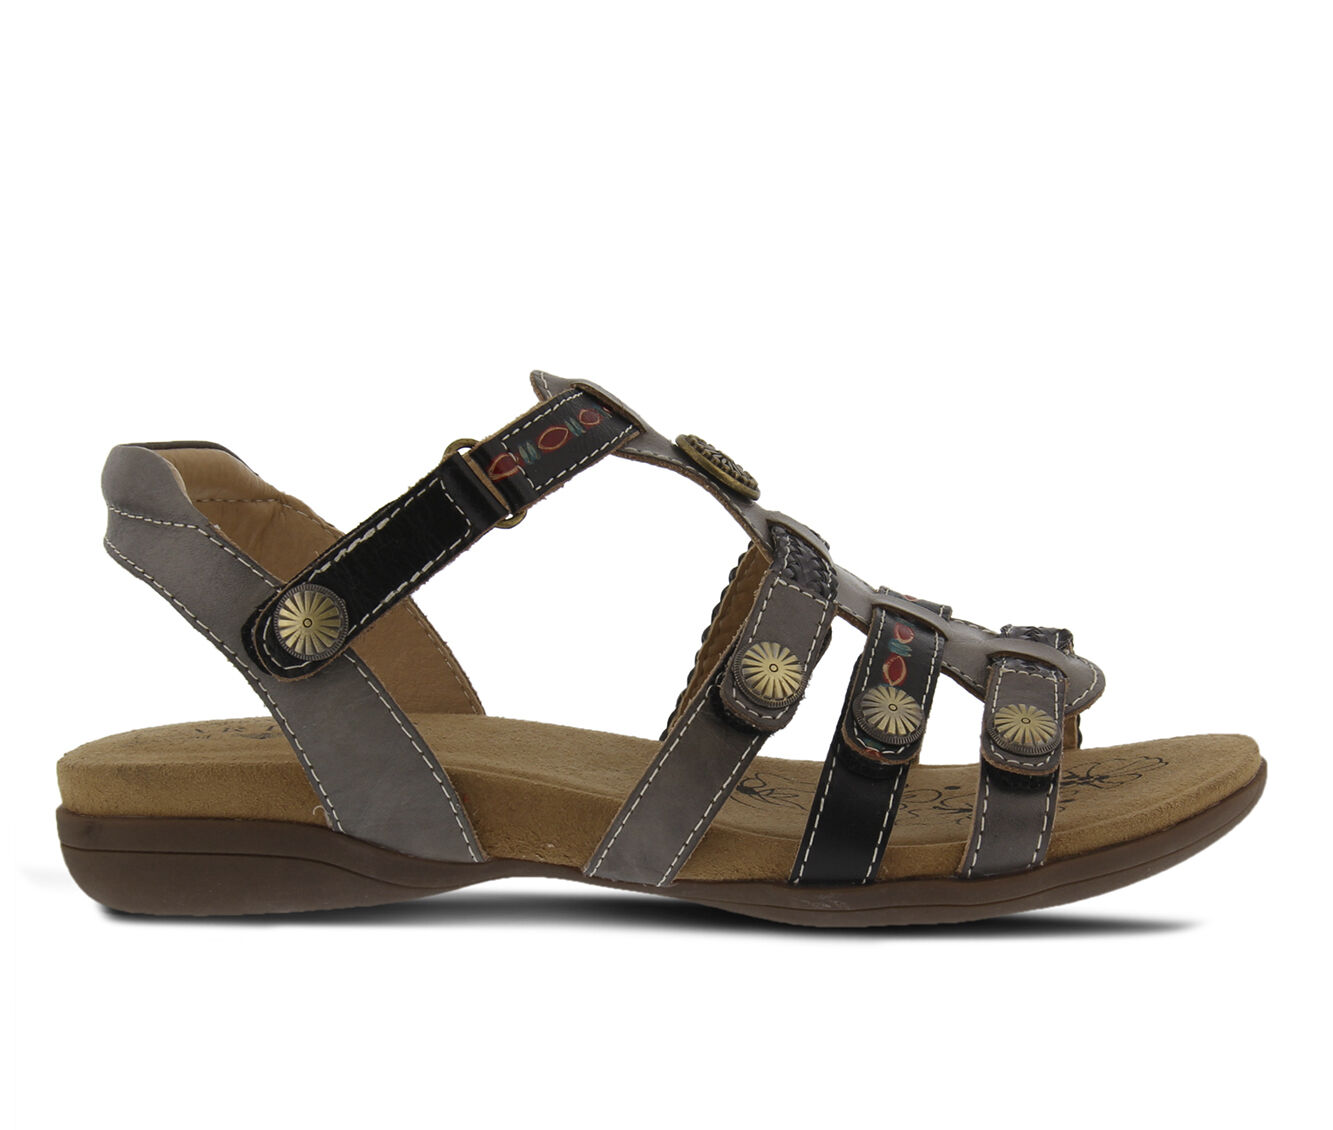 Women's L'ARTISTE Jerlene Sandals Grey Multi